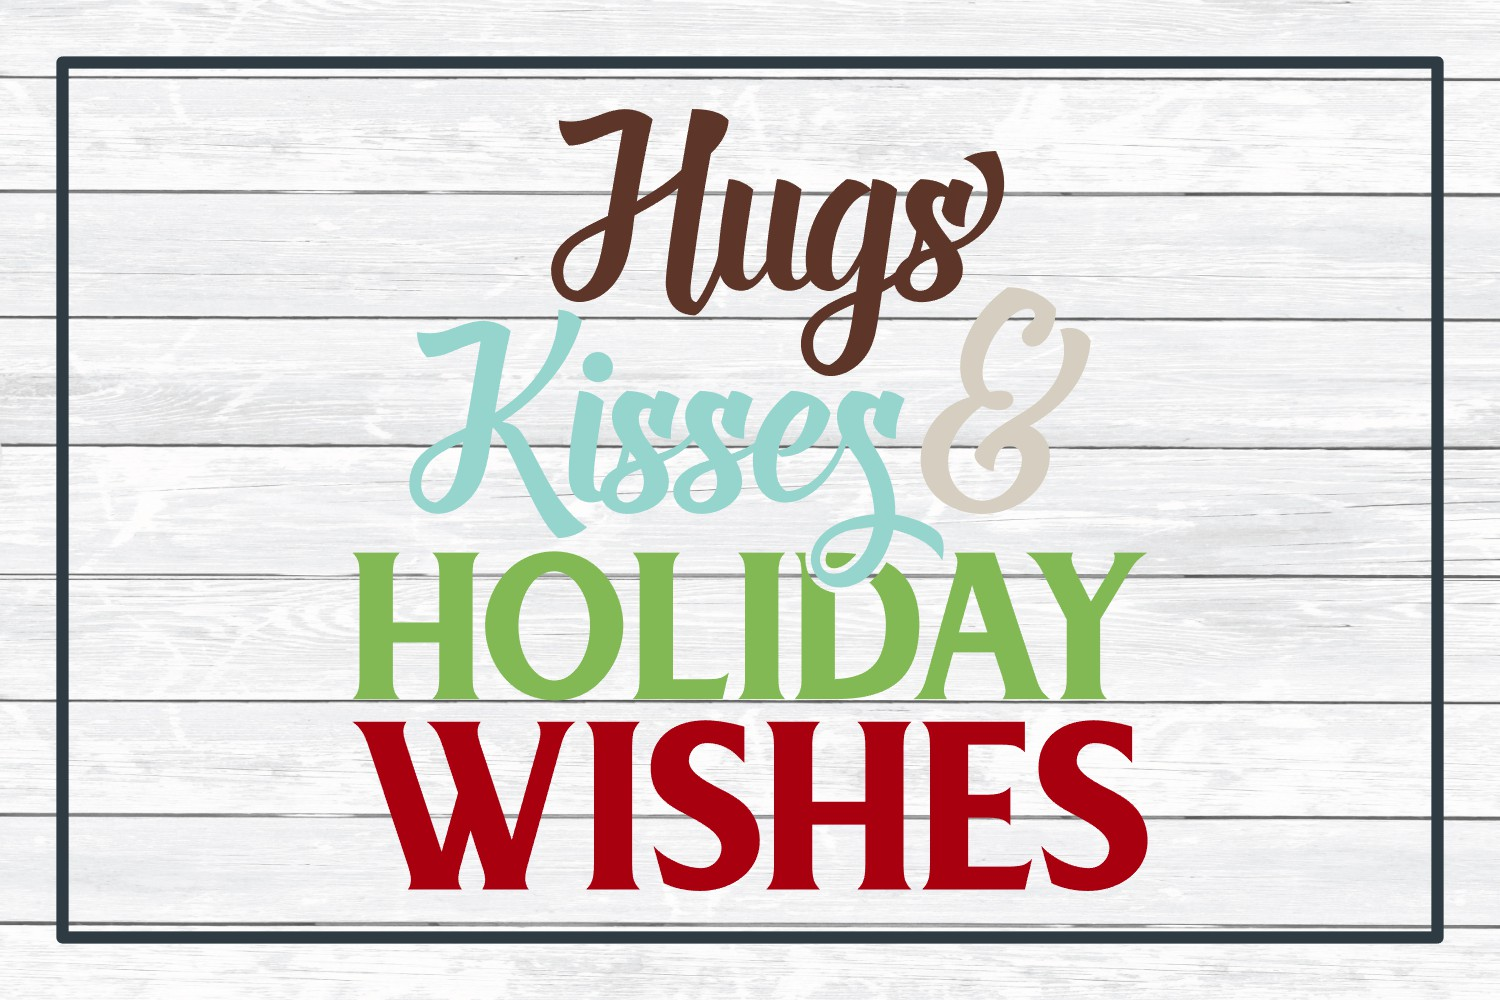 Hugs Kisses & Holiday Wishes, Winter Holiday SVG Cut File example image 3